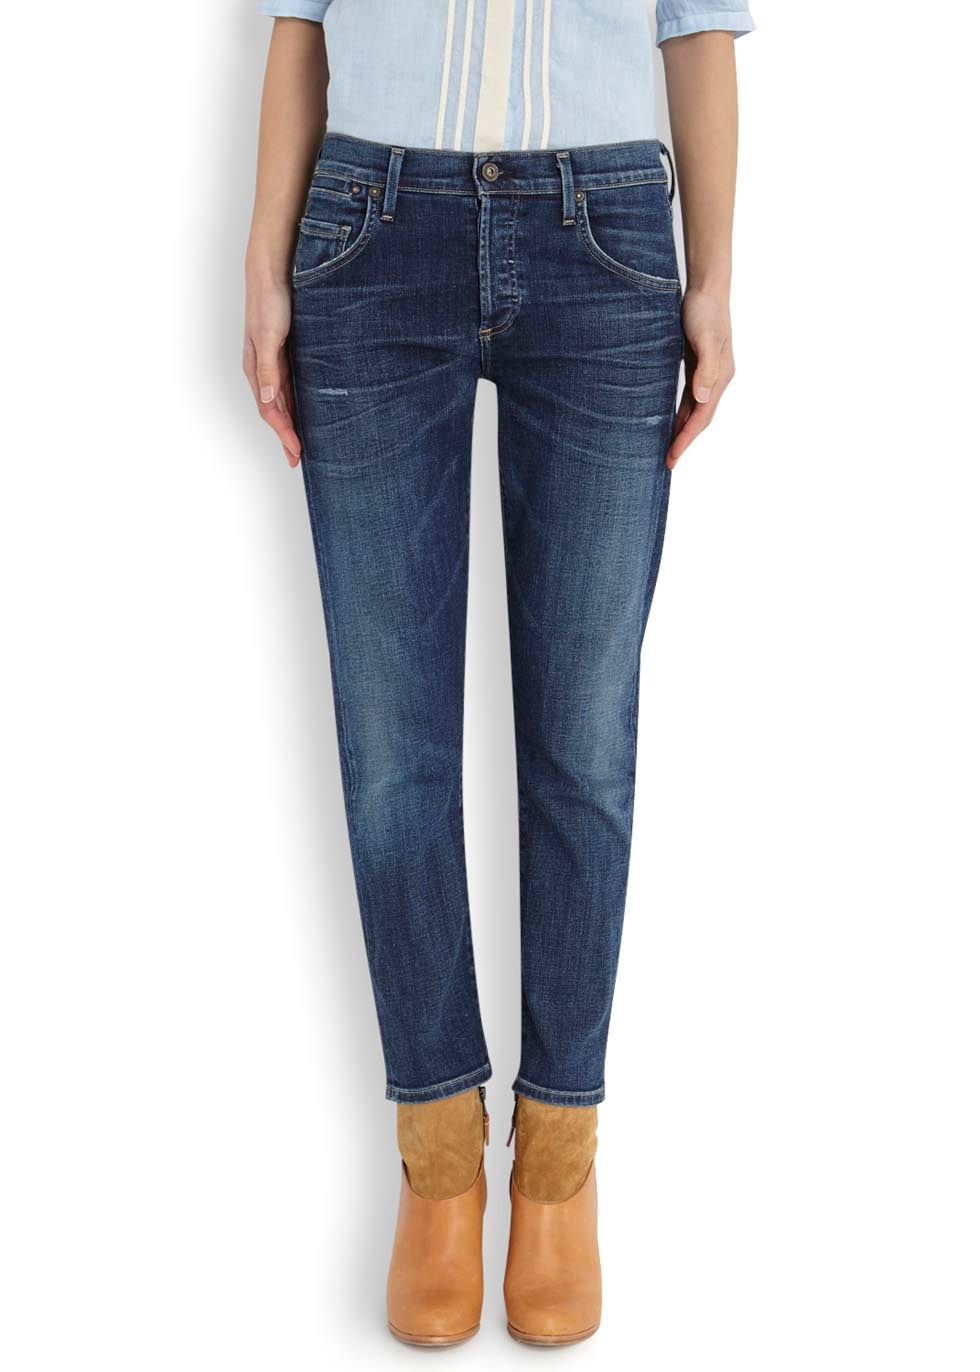 Emerson blue boyfriend fit jeans - Citizens of Humanity